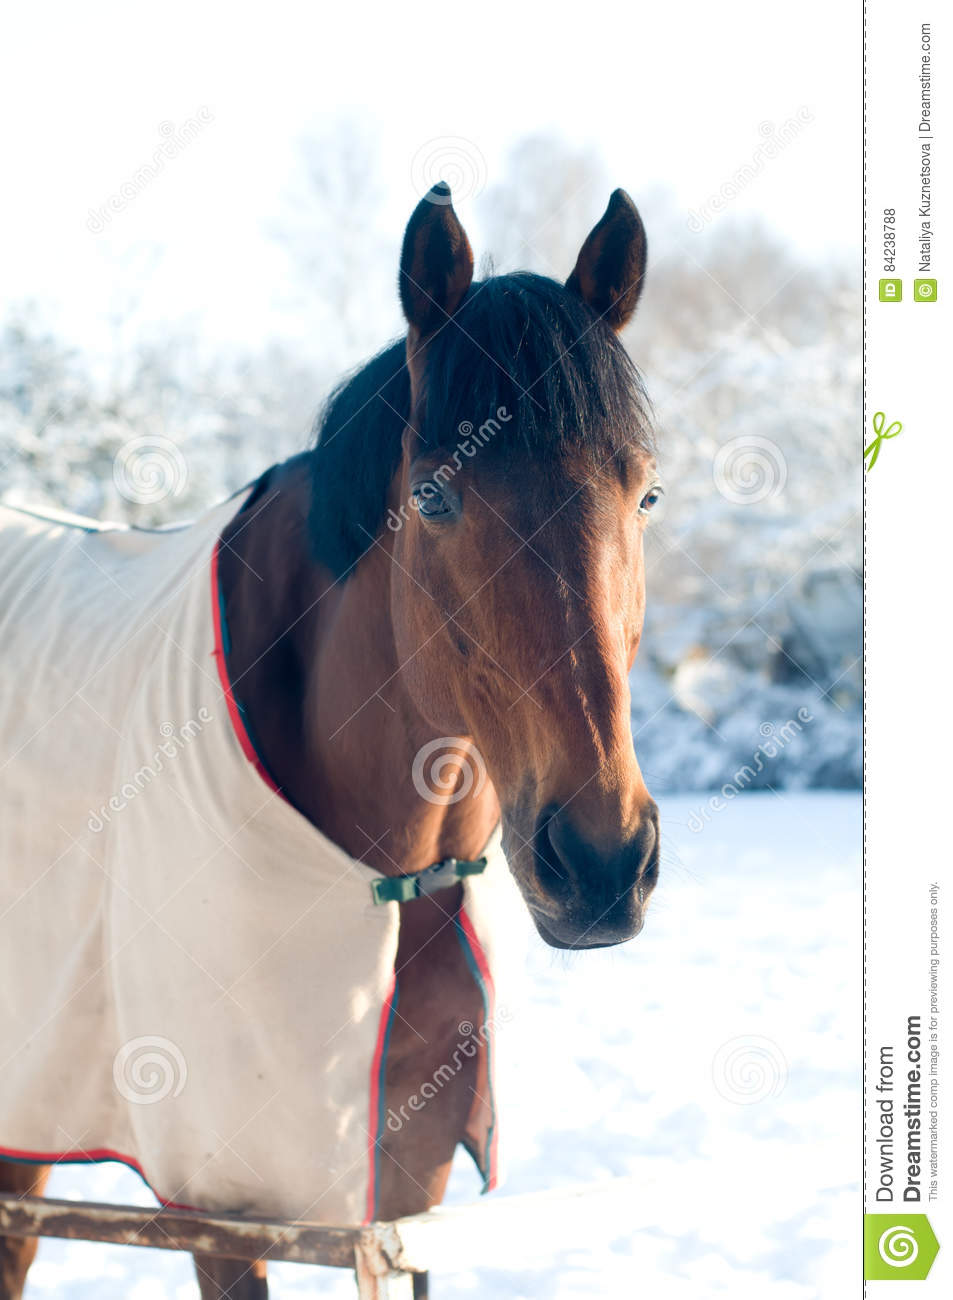 Image Stock Photo Couleur De Baie Cheval En Hiver Portrate kOiPuXZ